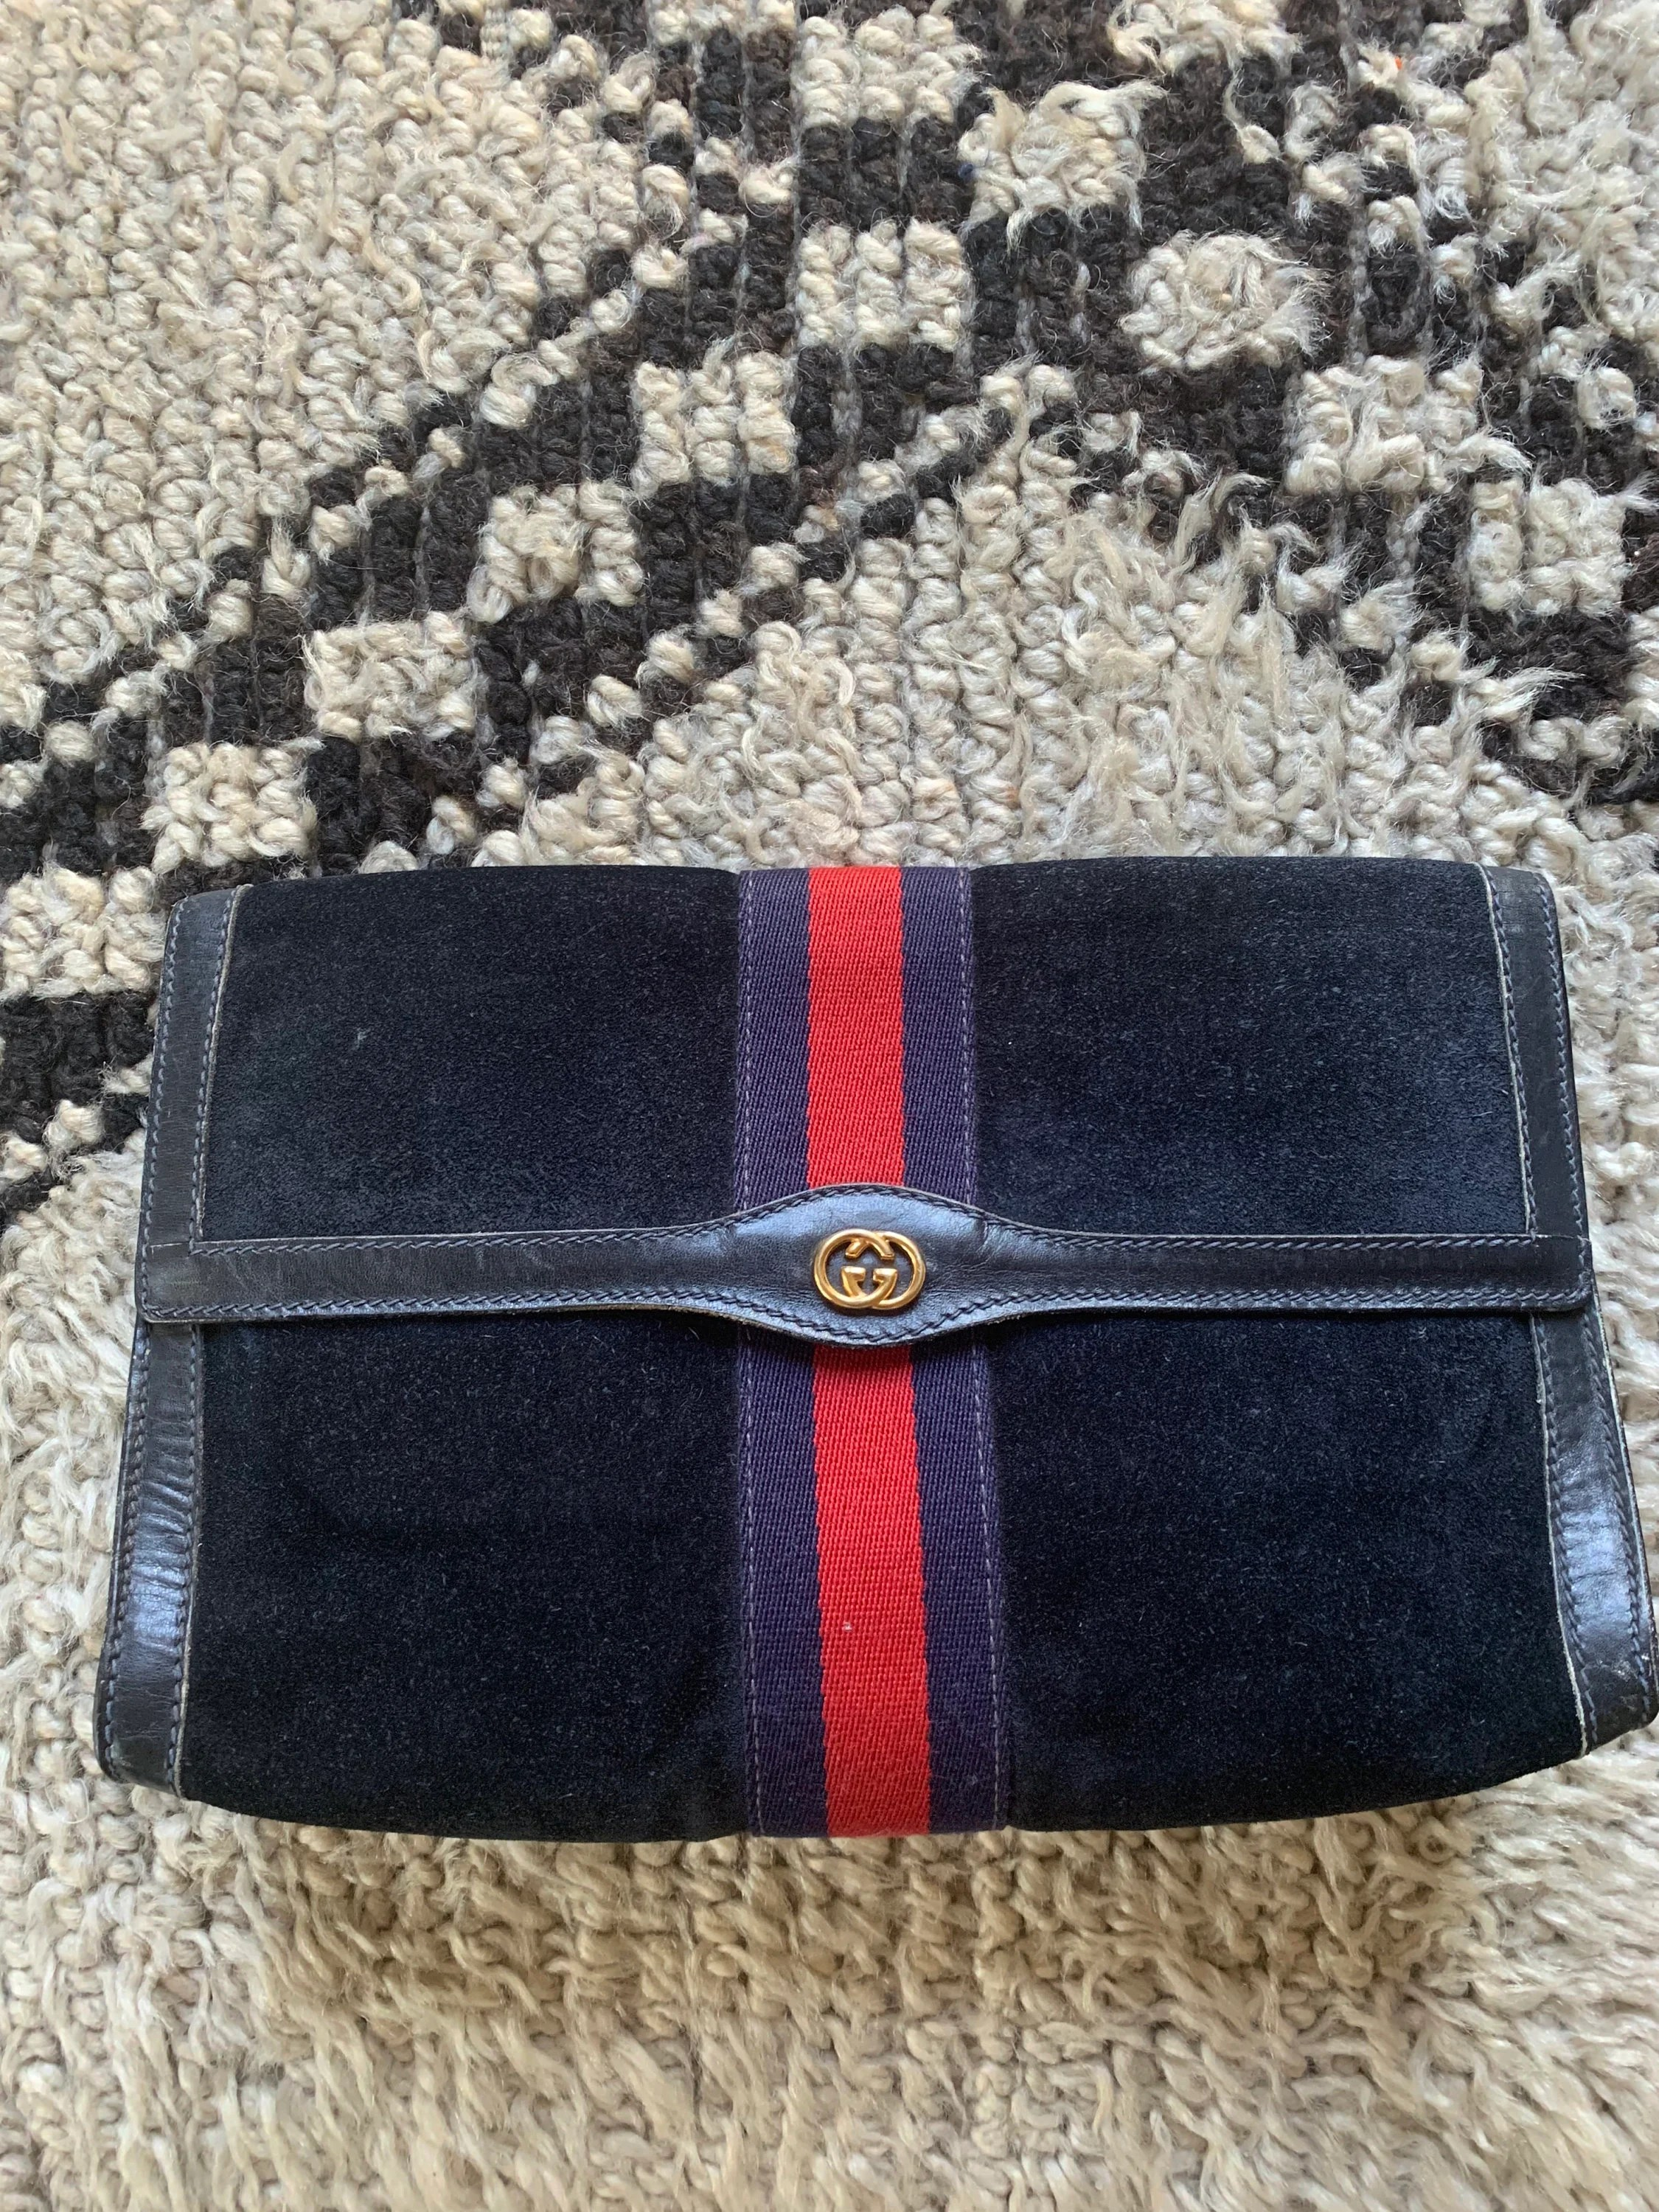 Etsy Vintage Gucci Vintage Gucci Parfumes Gg Logo Monogram Navy Blue Suede Web Sherry Line Red Striped Leather Supreme Zip Closure Clutch Pouch Case Purse Bag